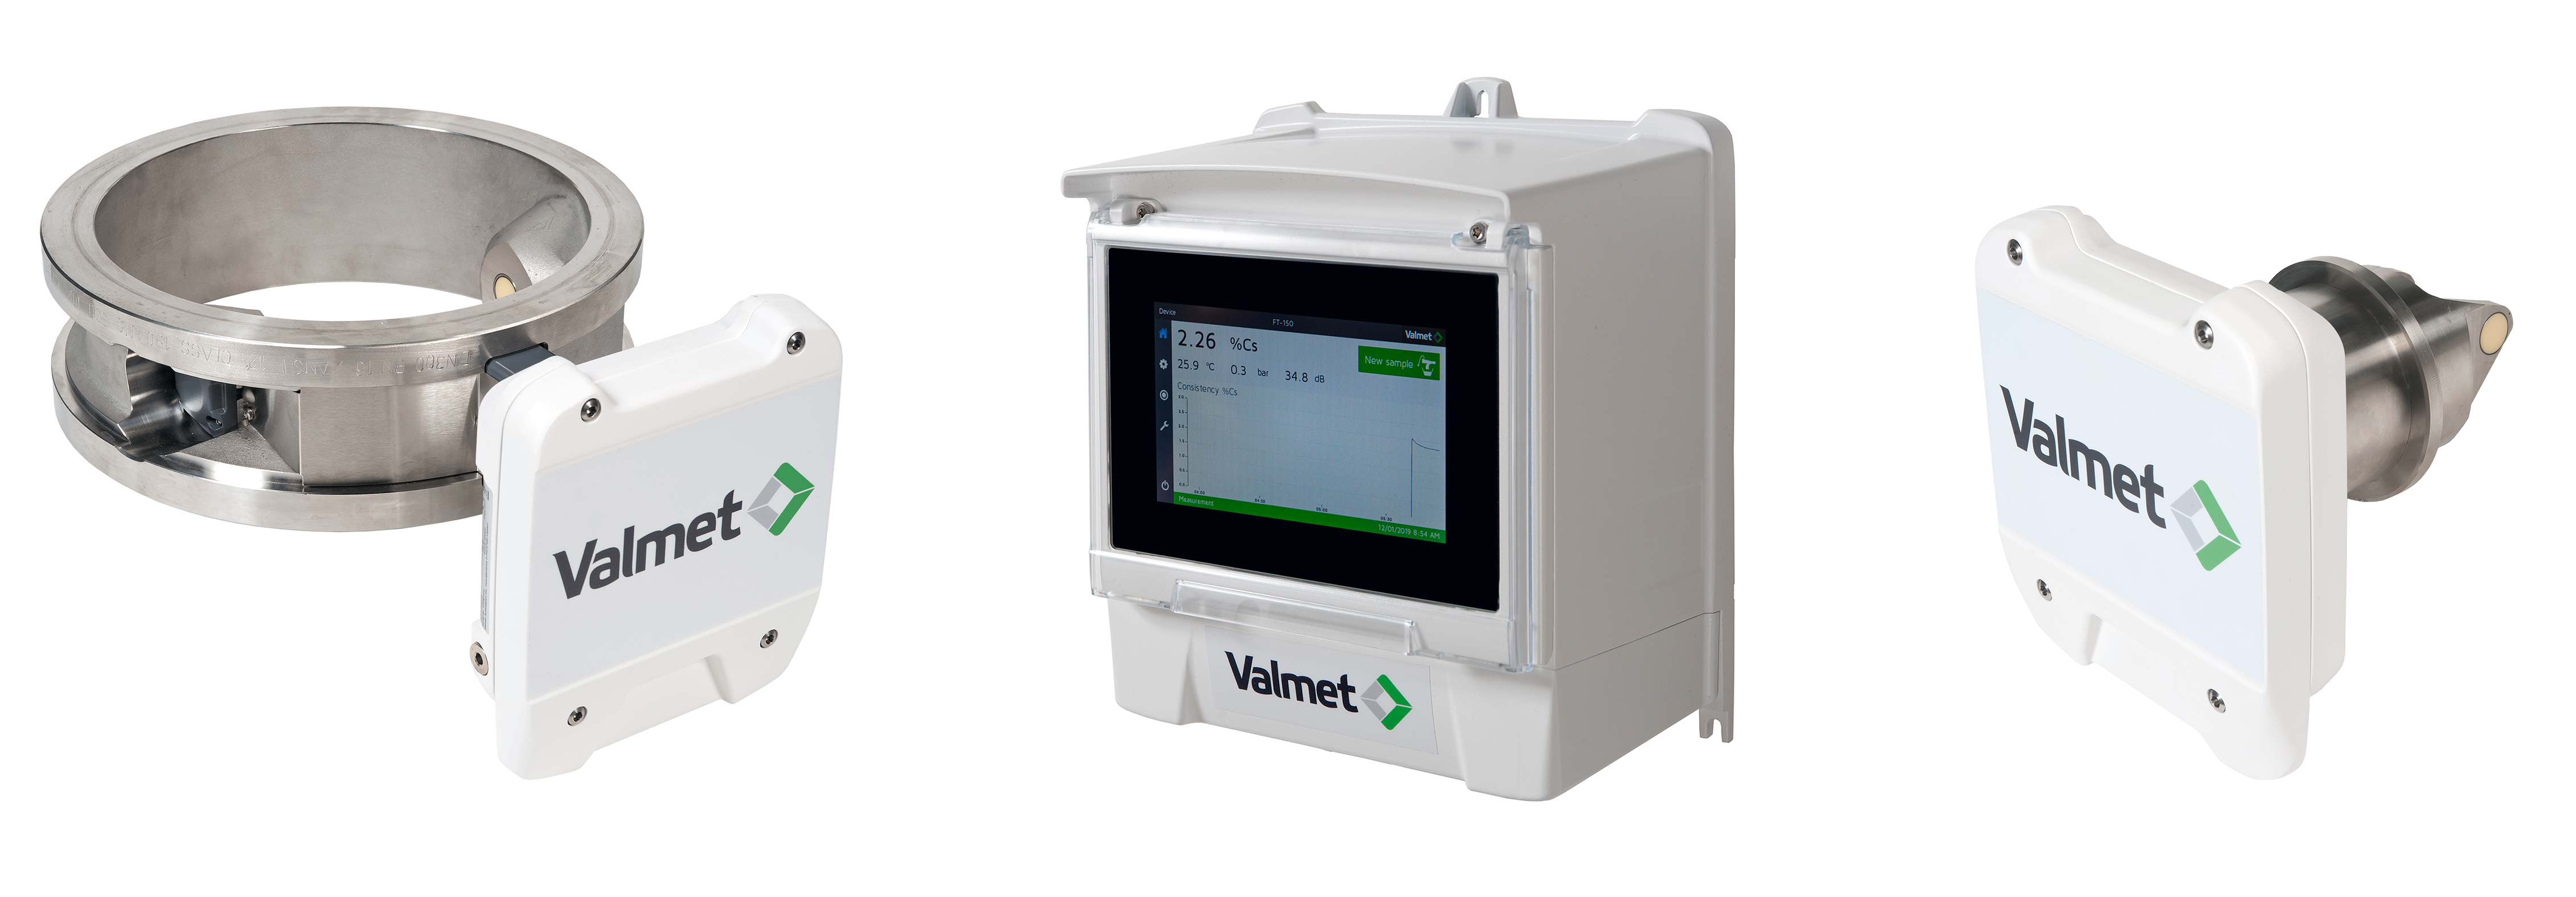 Valmet launches a new microwave consistency measurement for pulp and paper makers.